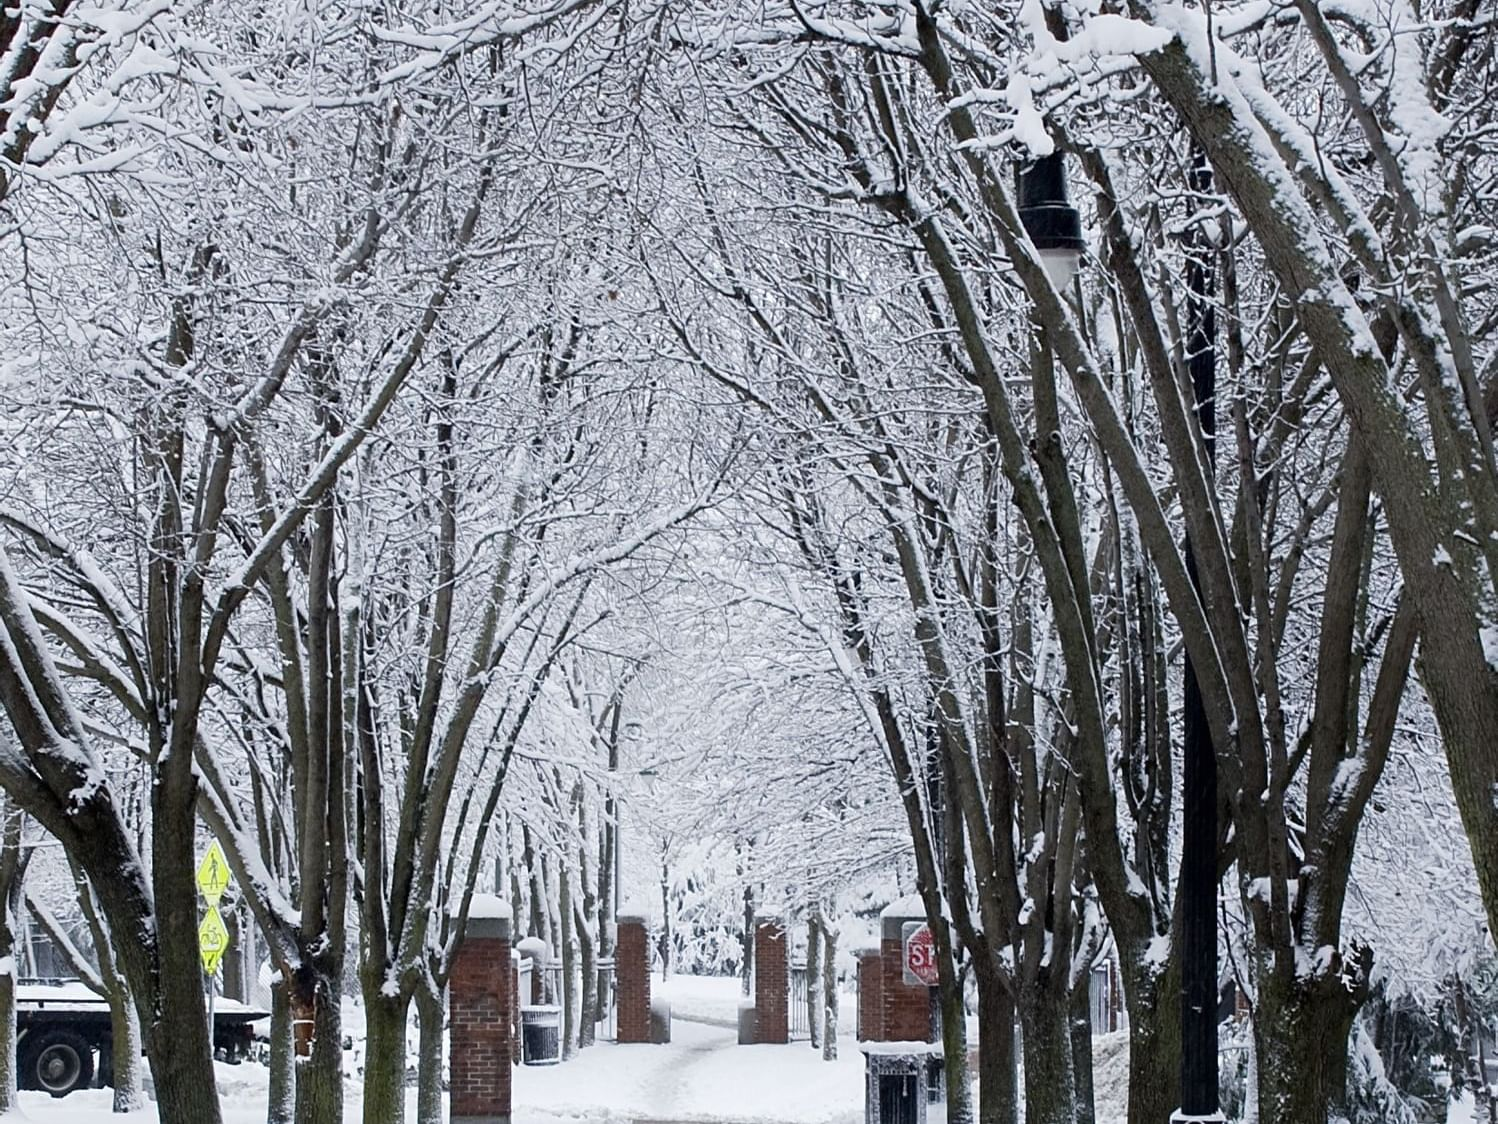 snowy scene with trees and a cleared path